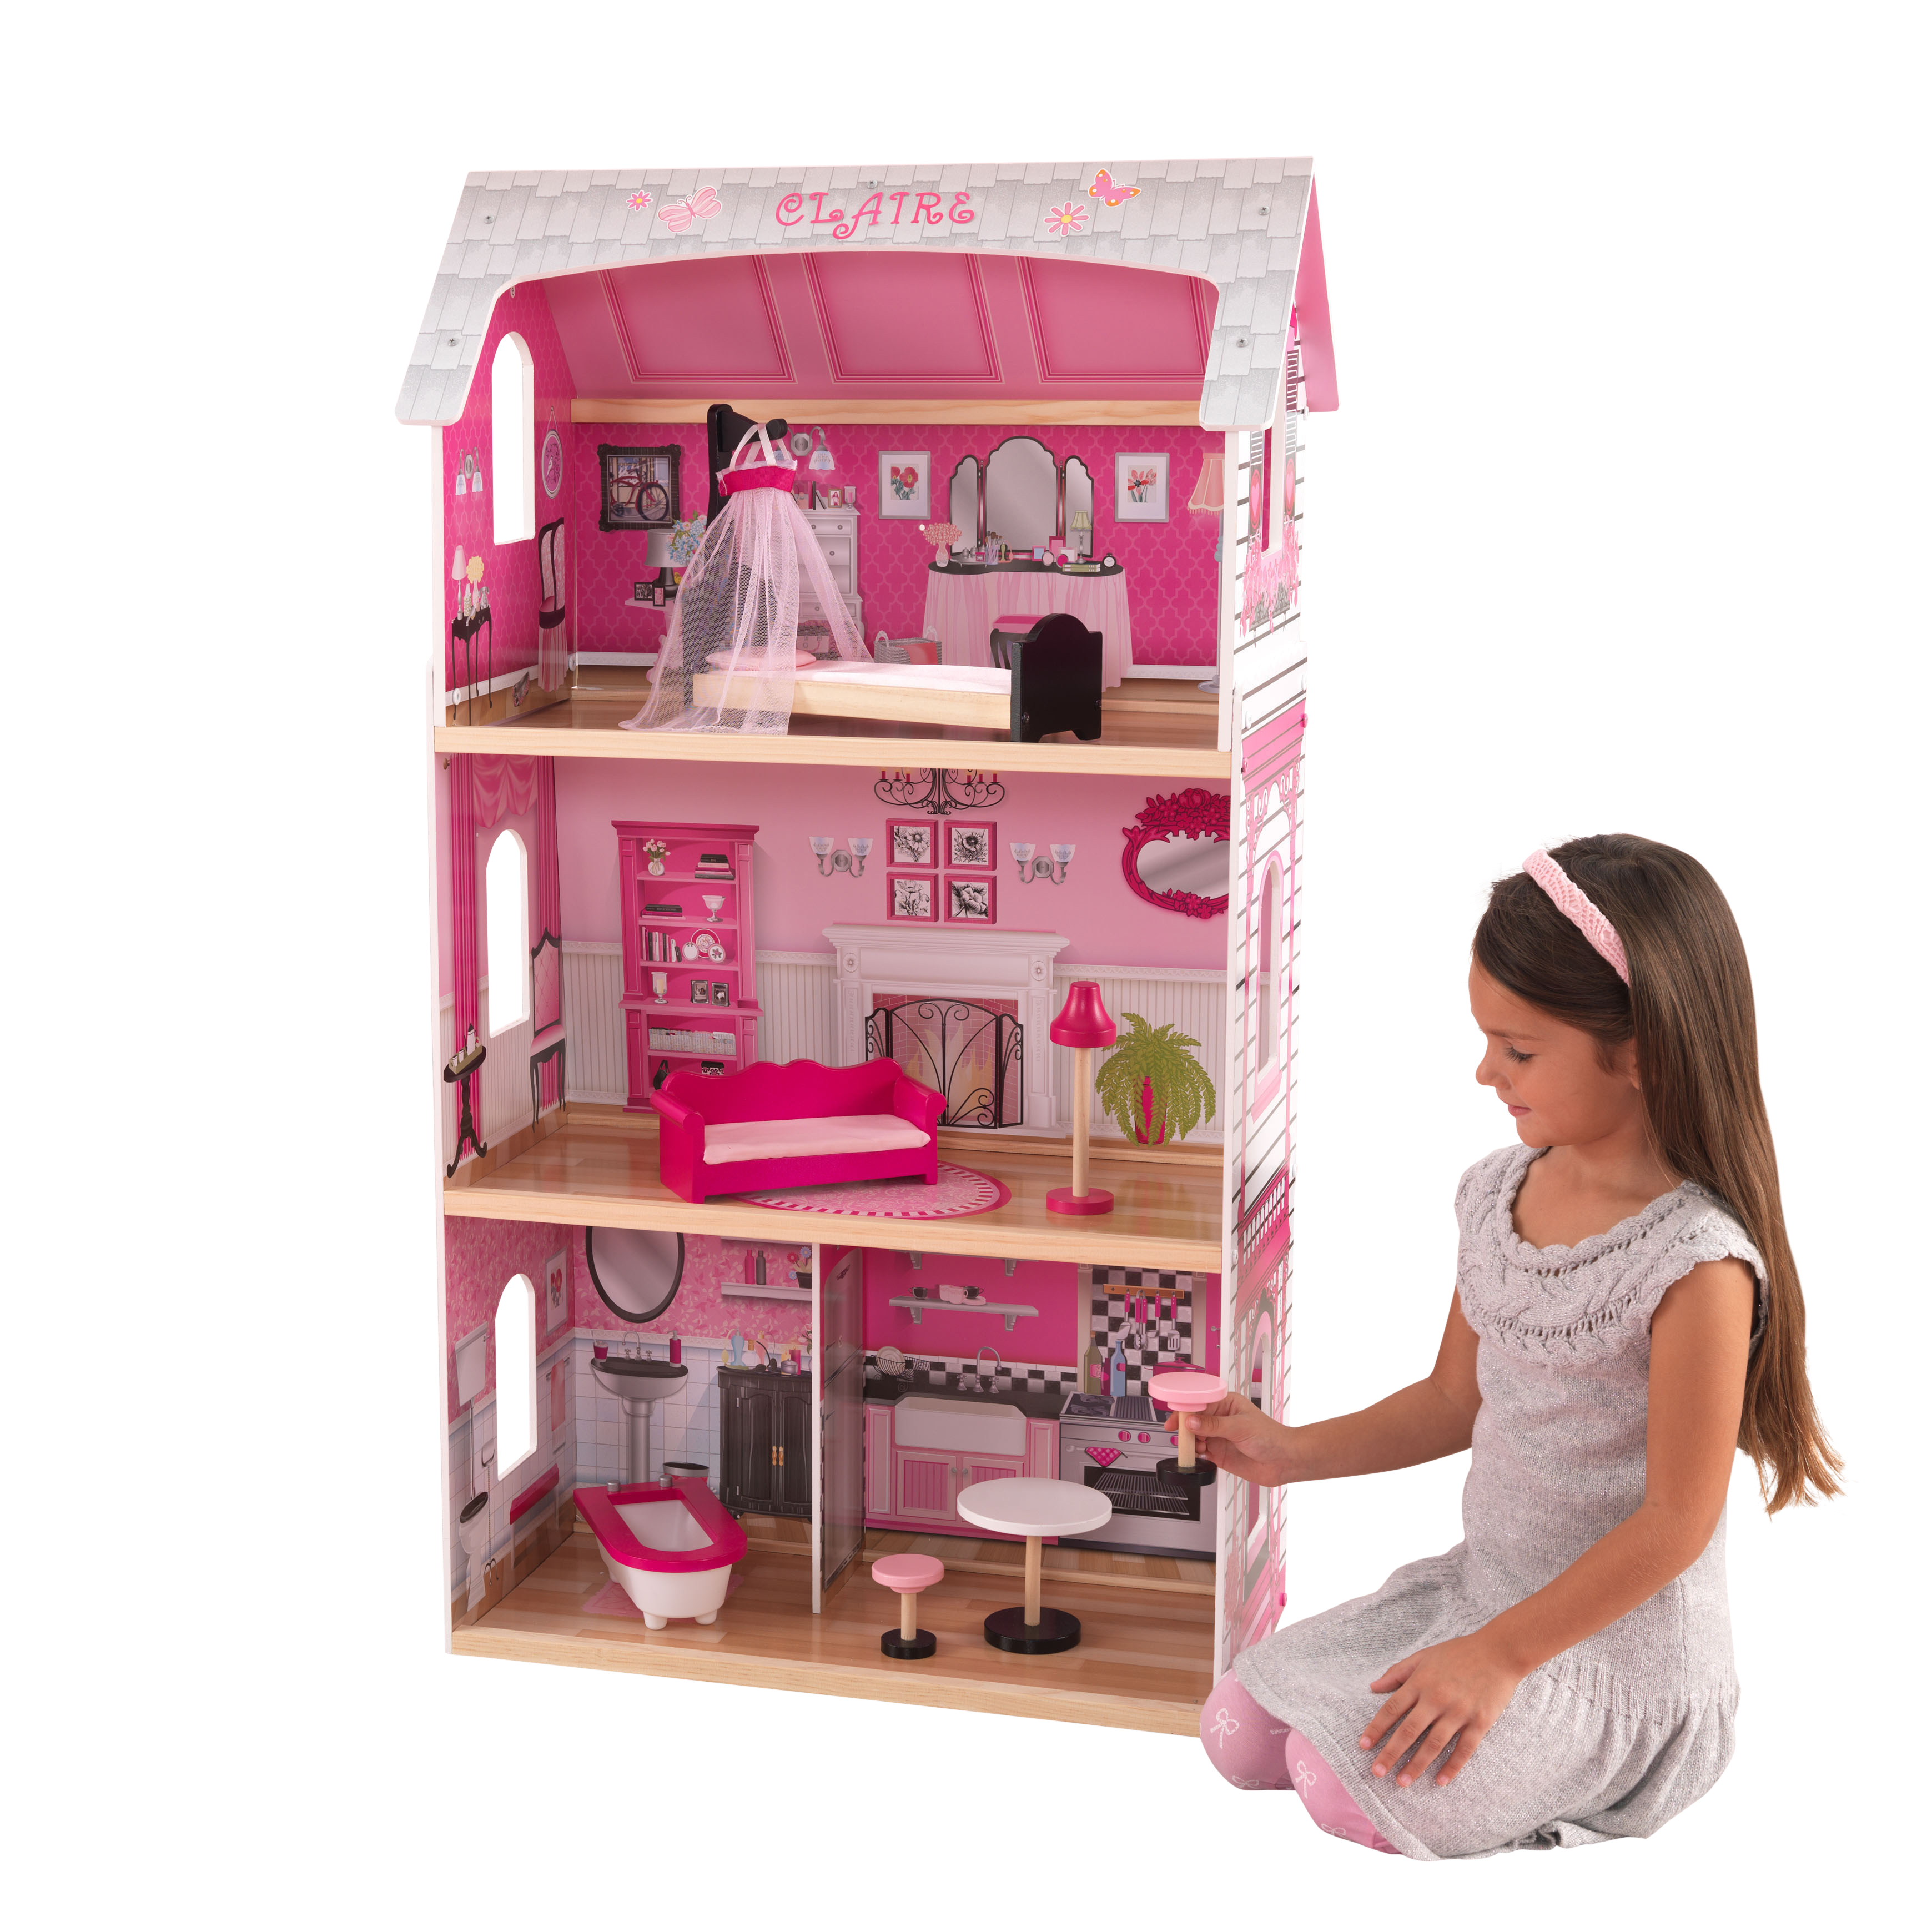 KidKraft Bonita Rosa Dollhouse with 6 accessories included by KidKraft